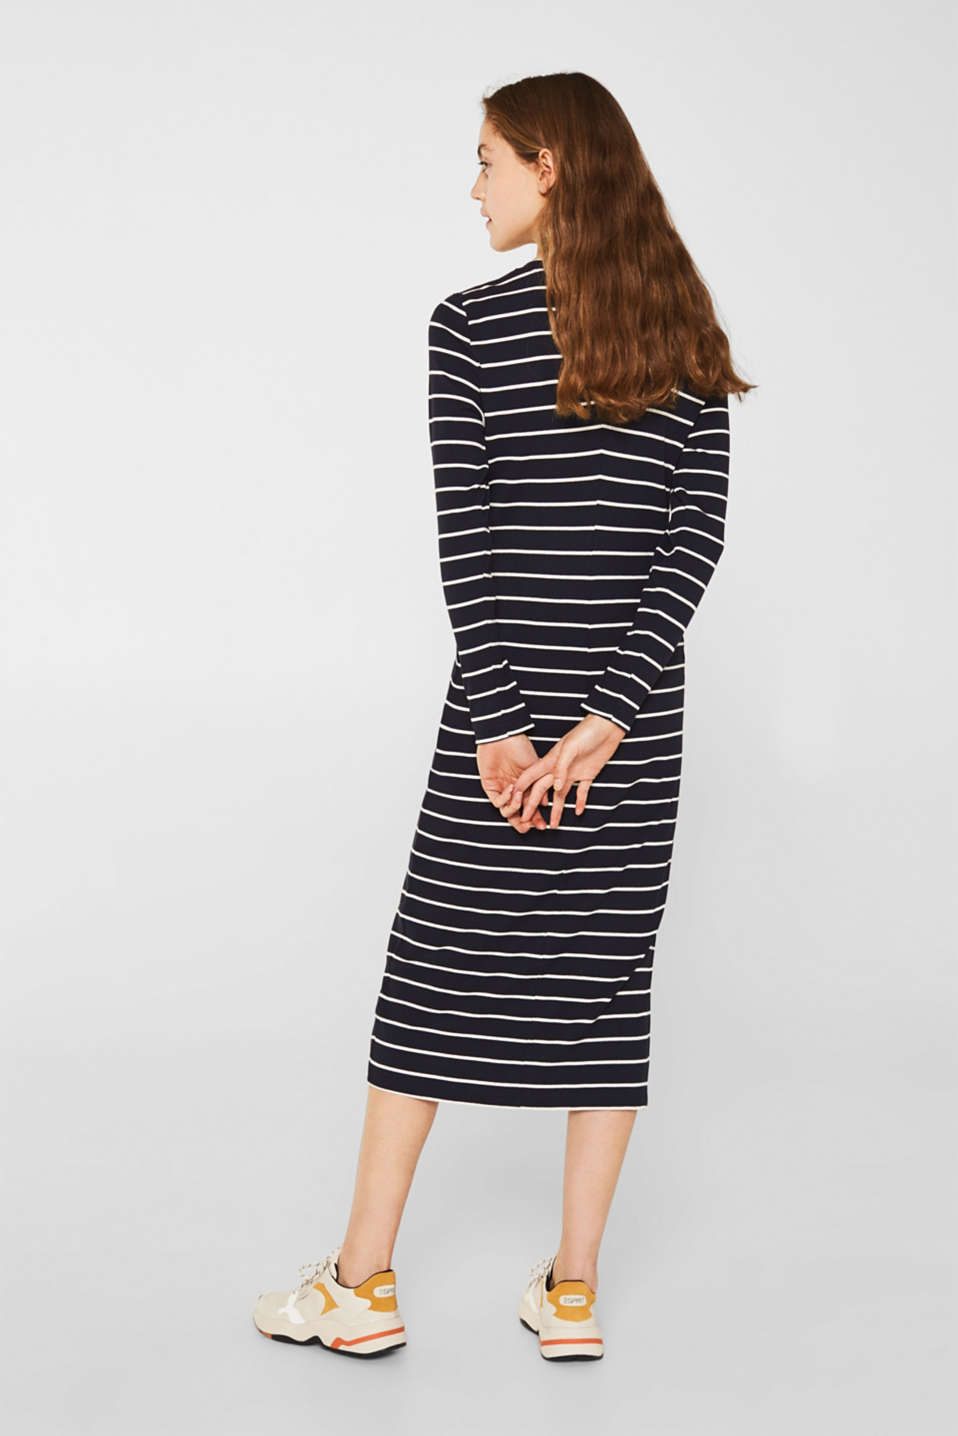 Stretch jersey dress with stripes and texture, NAVY, detail image number 2